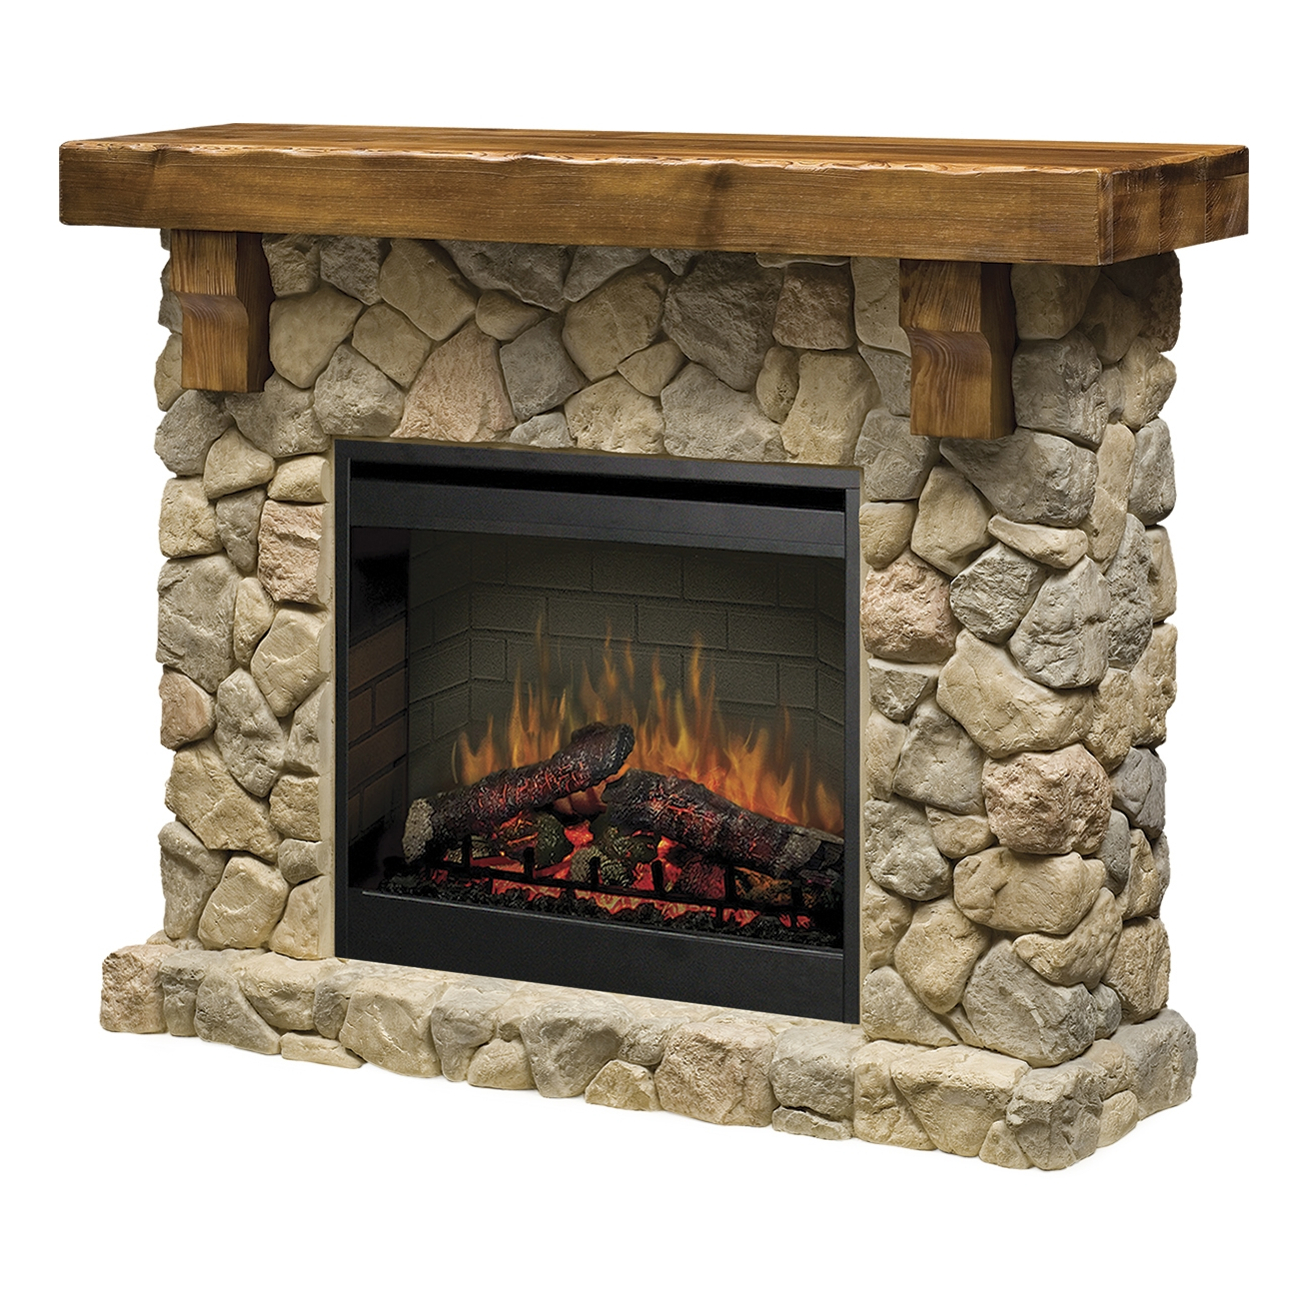 Dimplex fieldstone smp 904 st electric fireplace wall mantel addco electric fireplaces - Fire place walls ...